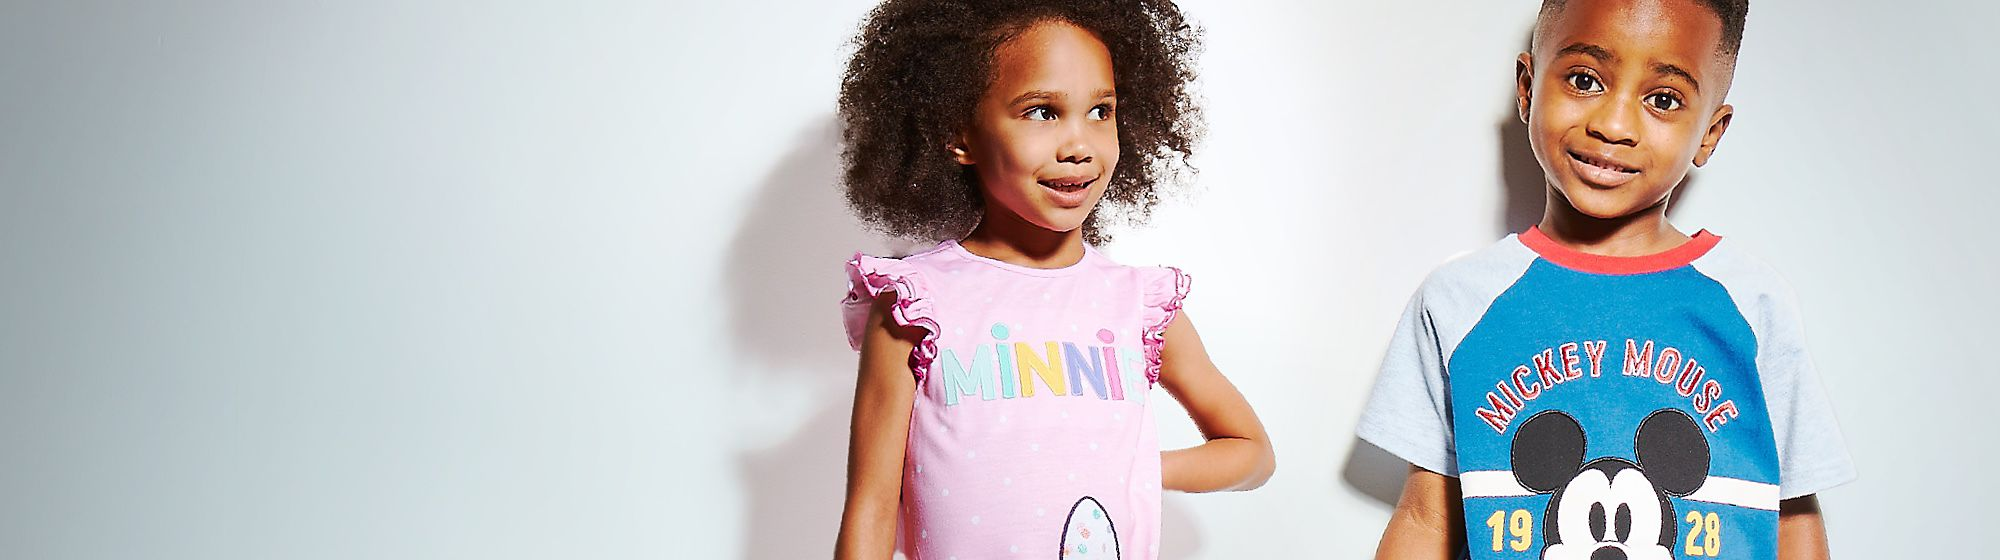 Disney Kids Find the perfect Disney gift for kids and teens including toys, clothing, fancy dress, collectibles and more